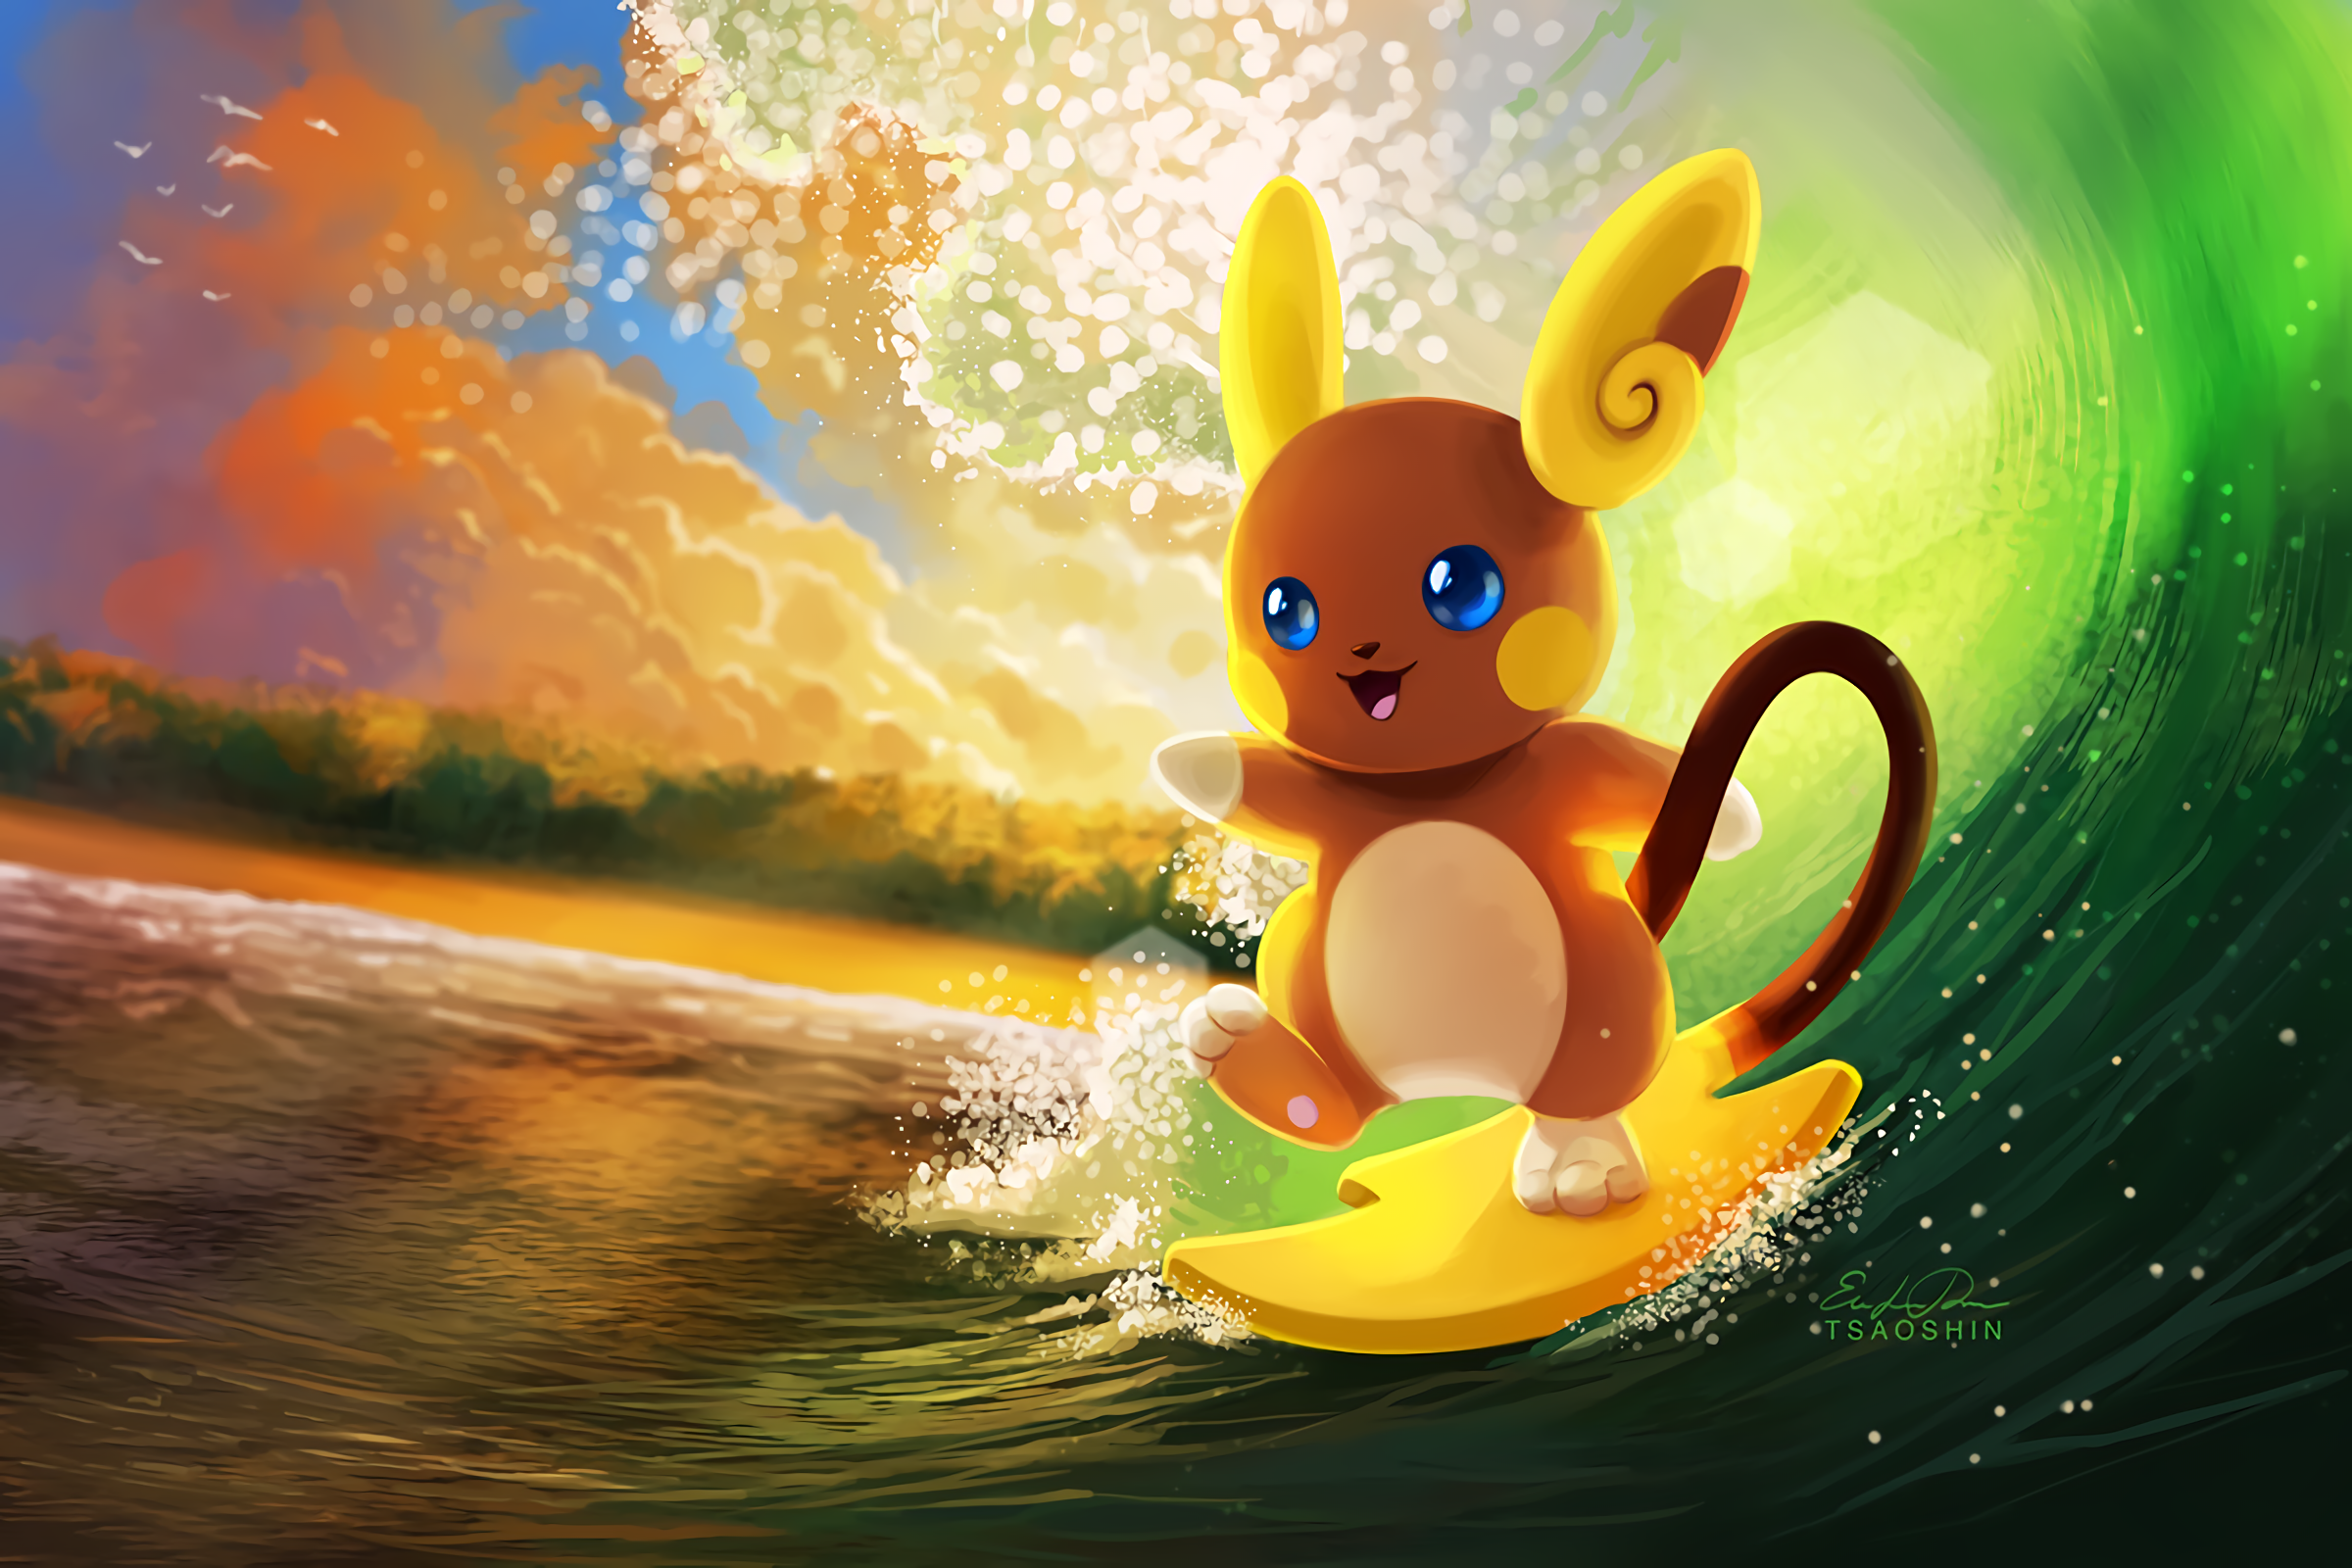 Pokemon Sun And Moon Wallpaper: 2 Alolan Raichu HD Wallpapers